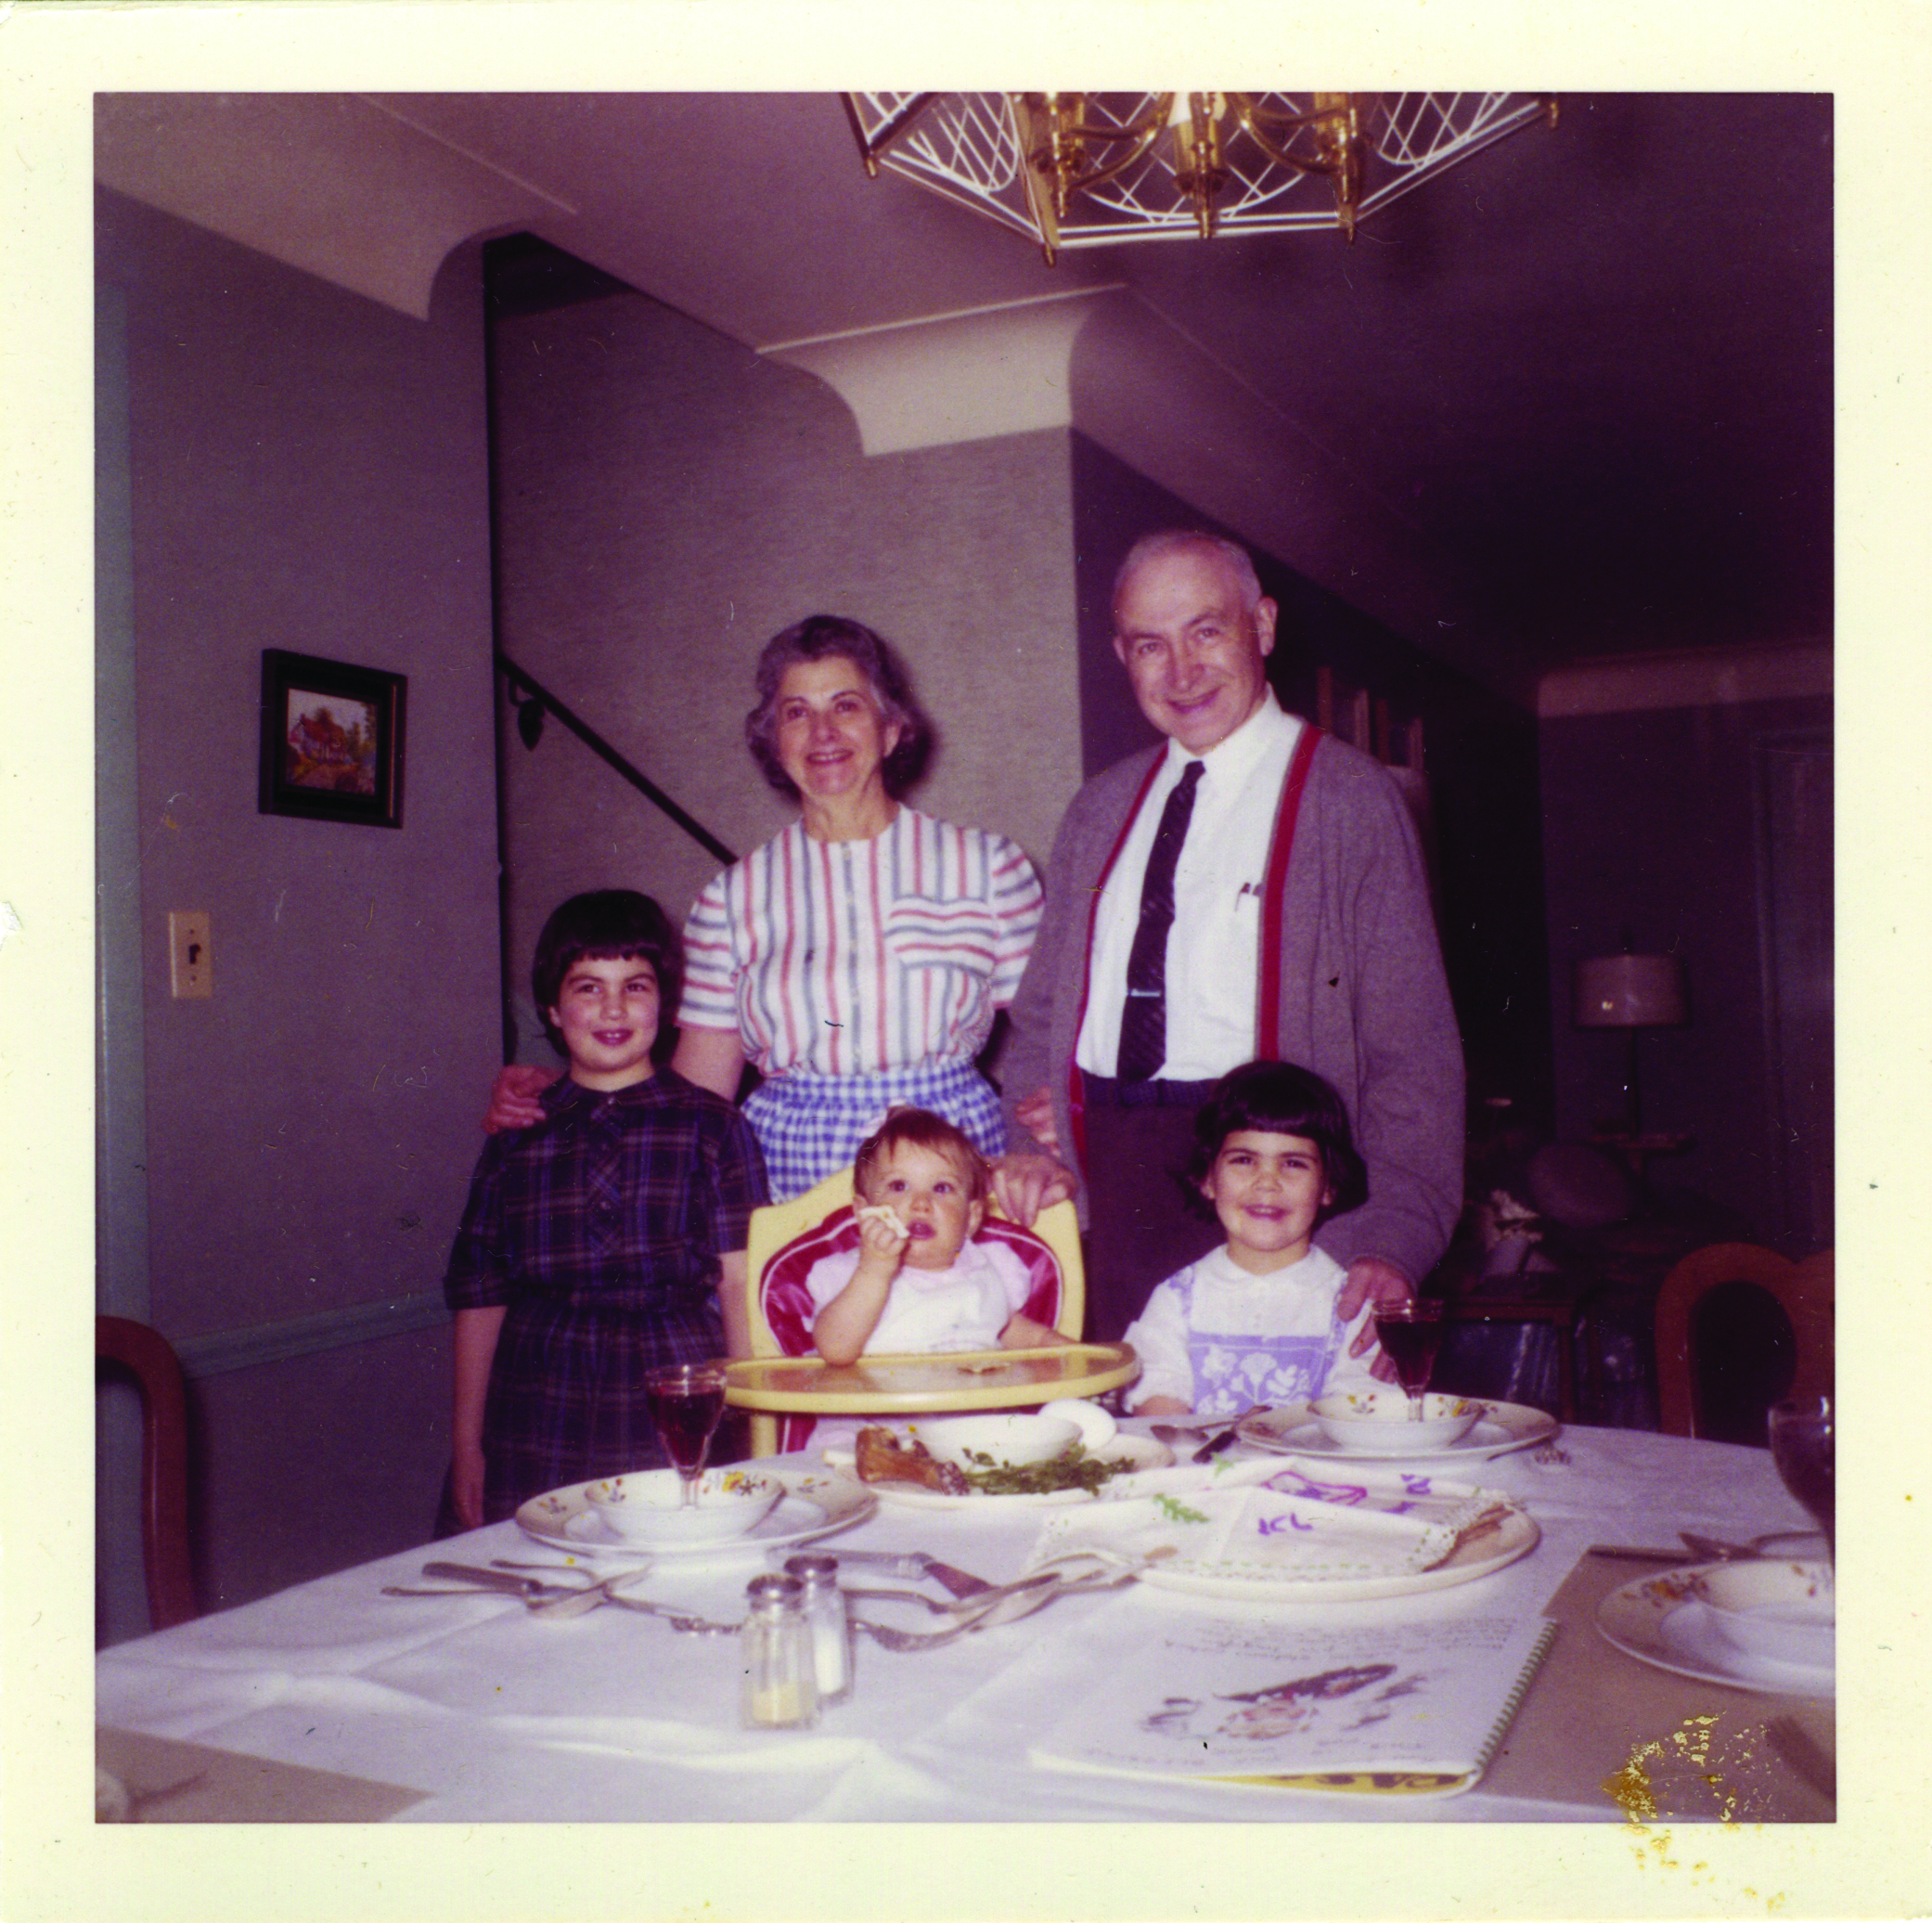 See the little girl with dark hair? That's me, Carla. Happy to have my Grandpa Abe over my shoulder. -